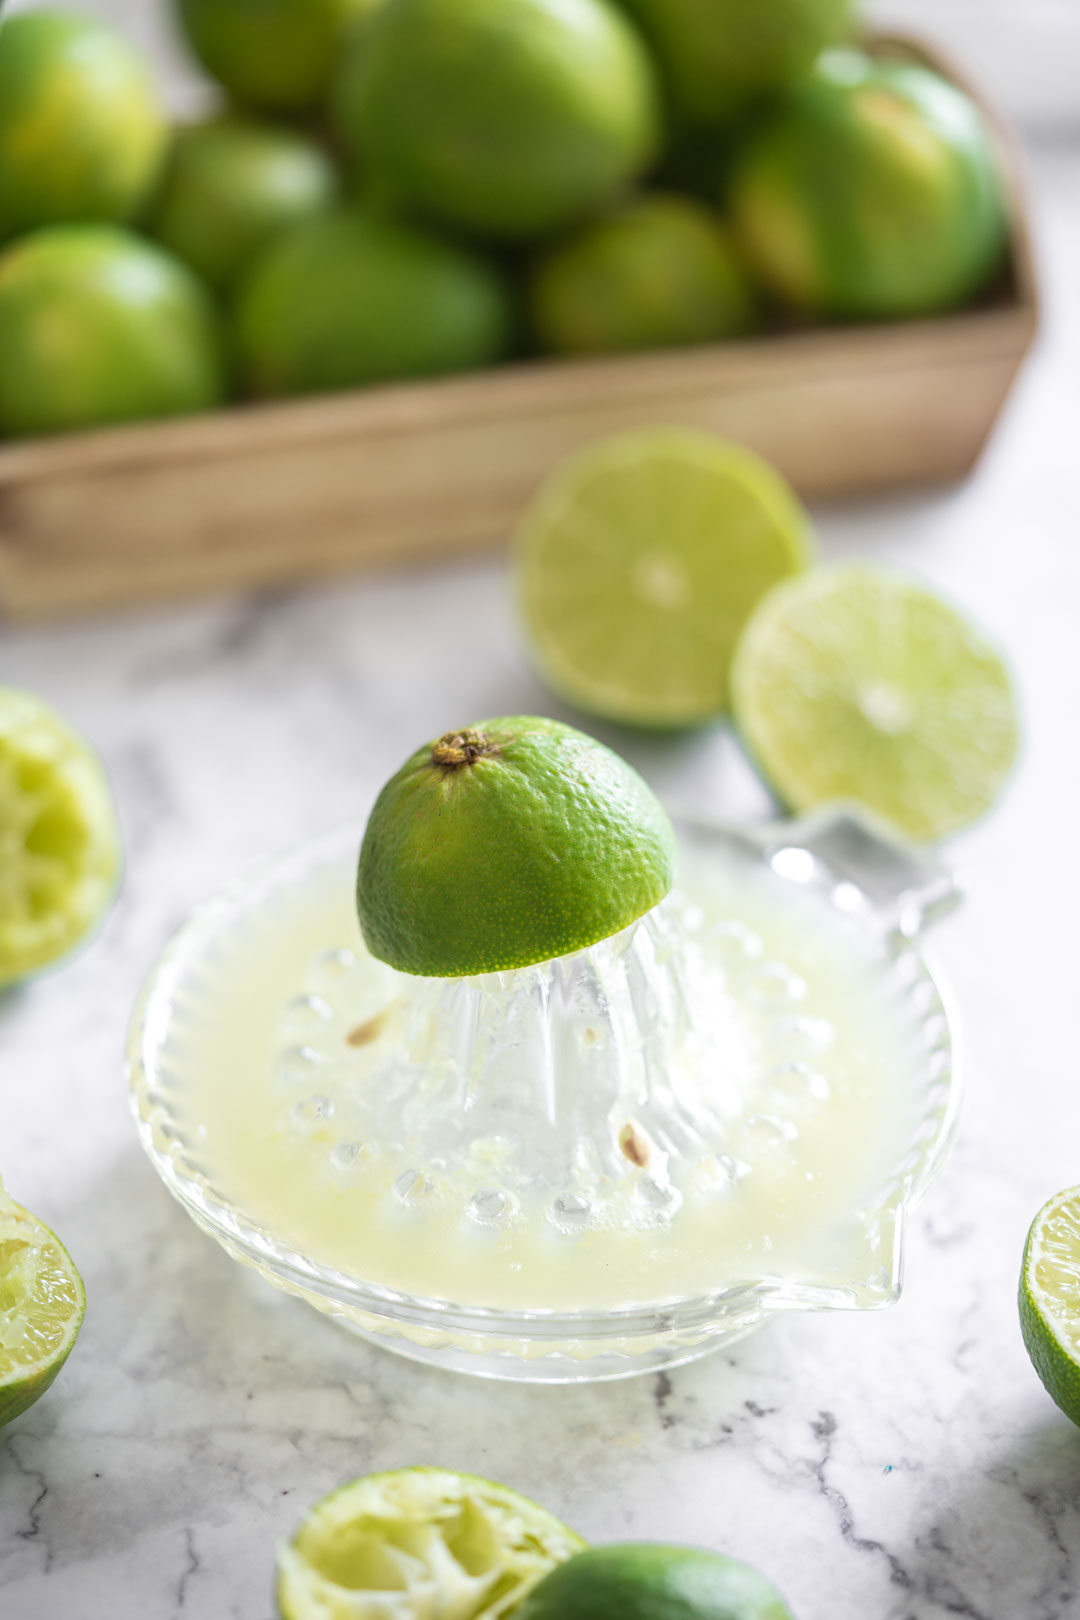 lime juice in a glass juicer